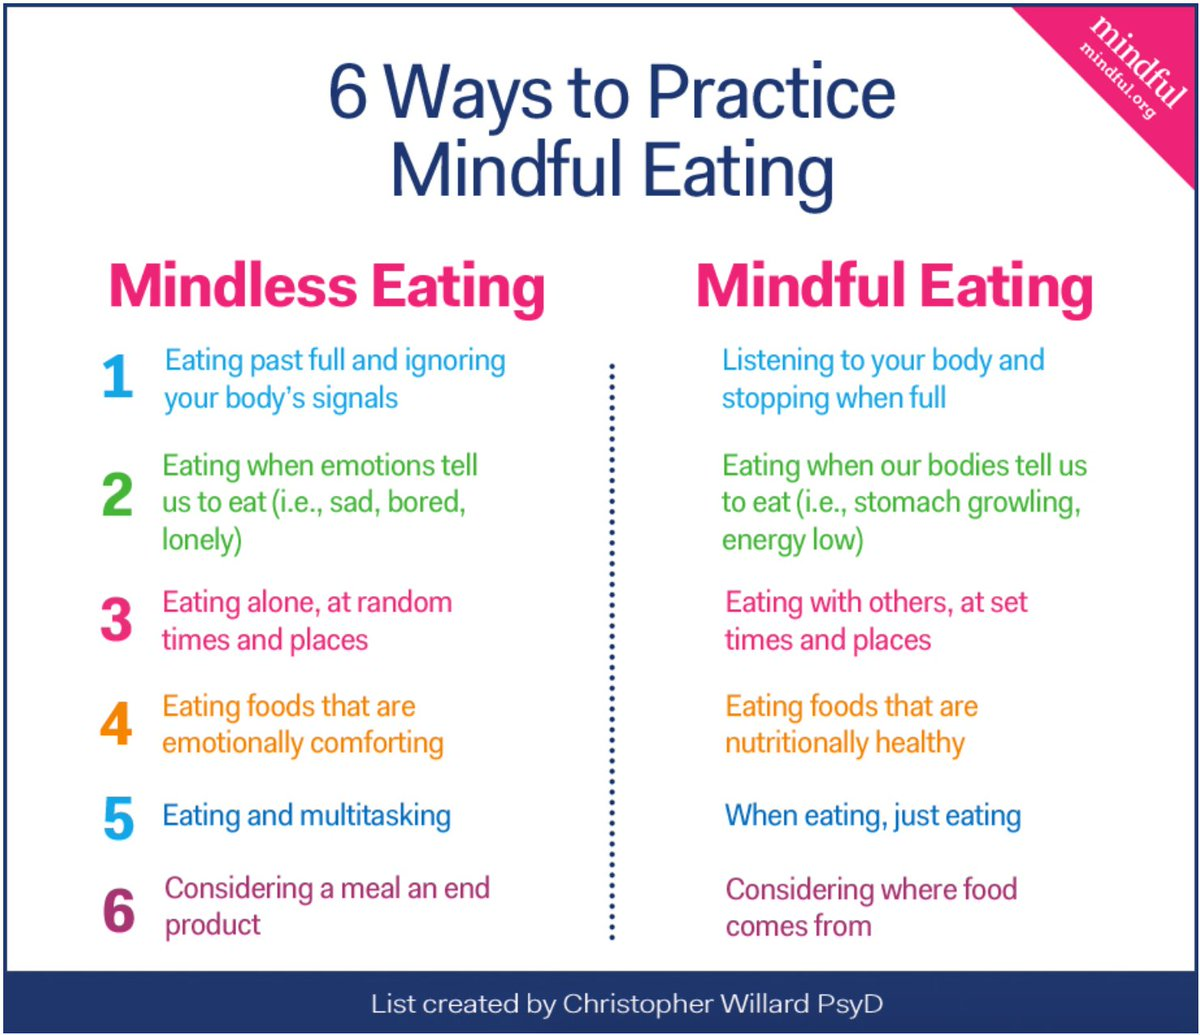 #Mindfulness  and #mindfuleating  are a few of many potential paths toward #recovery  from disordered eating.... #odaat  #neda  #edaw  #nedawareness  #comeasyouare  #eatingdisorders